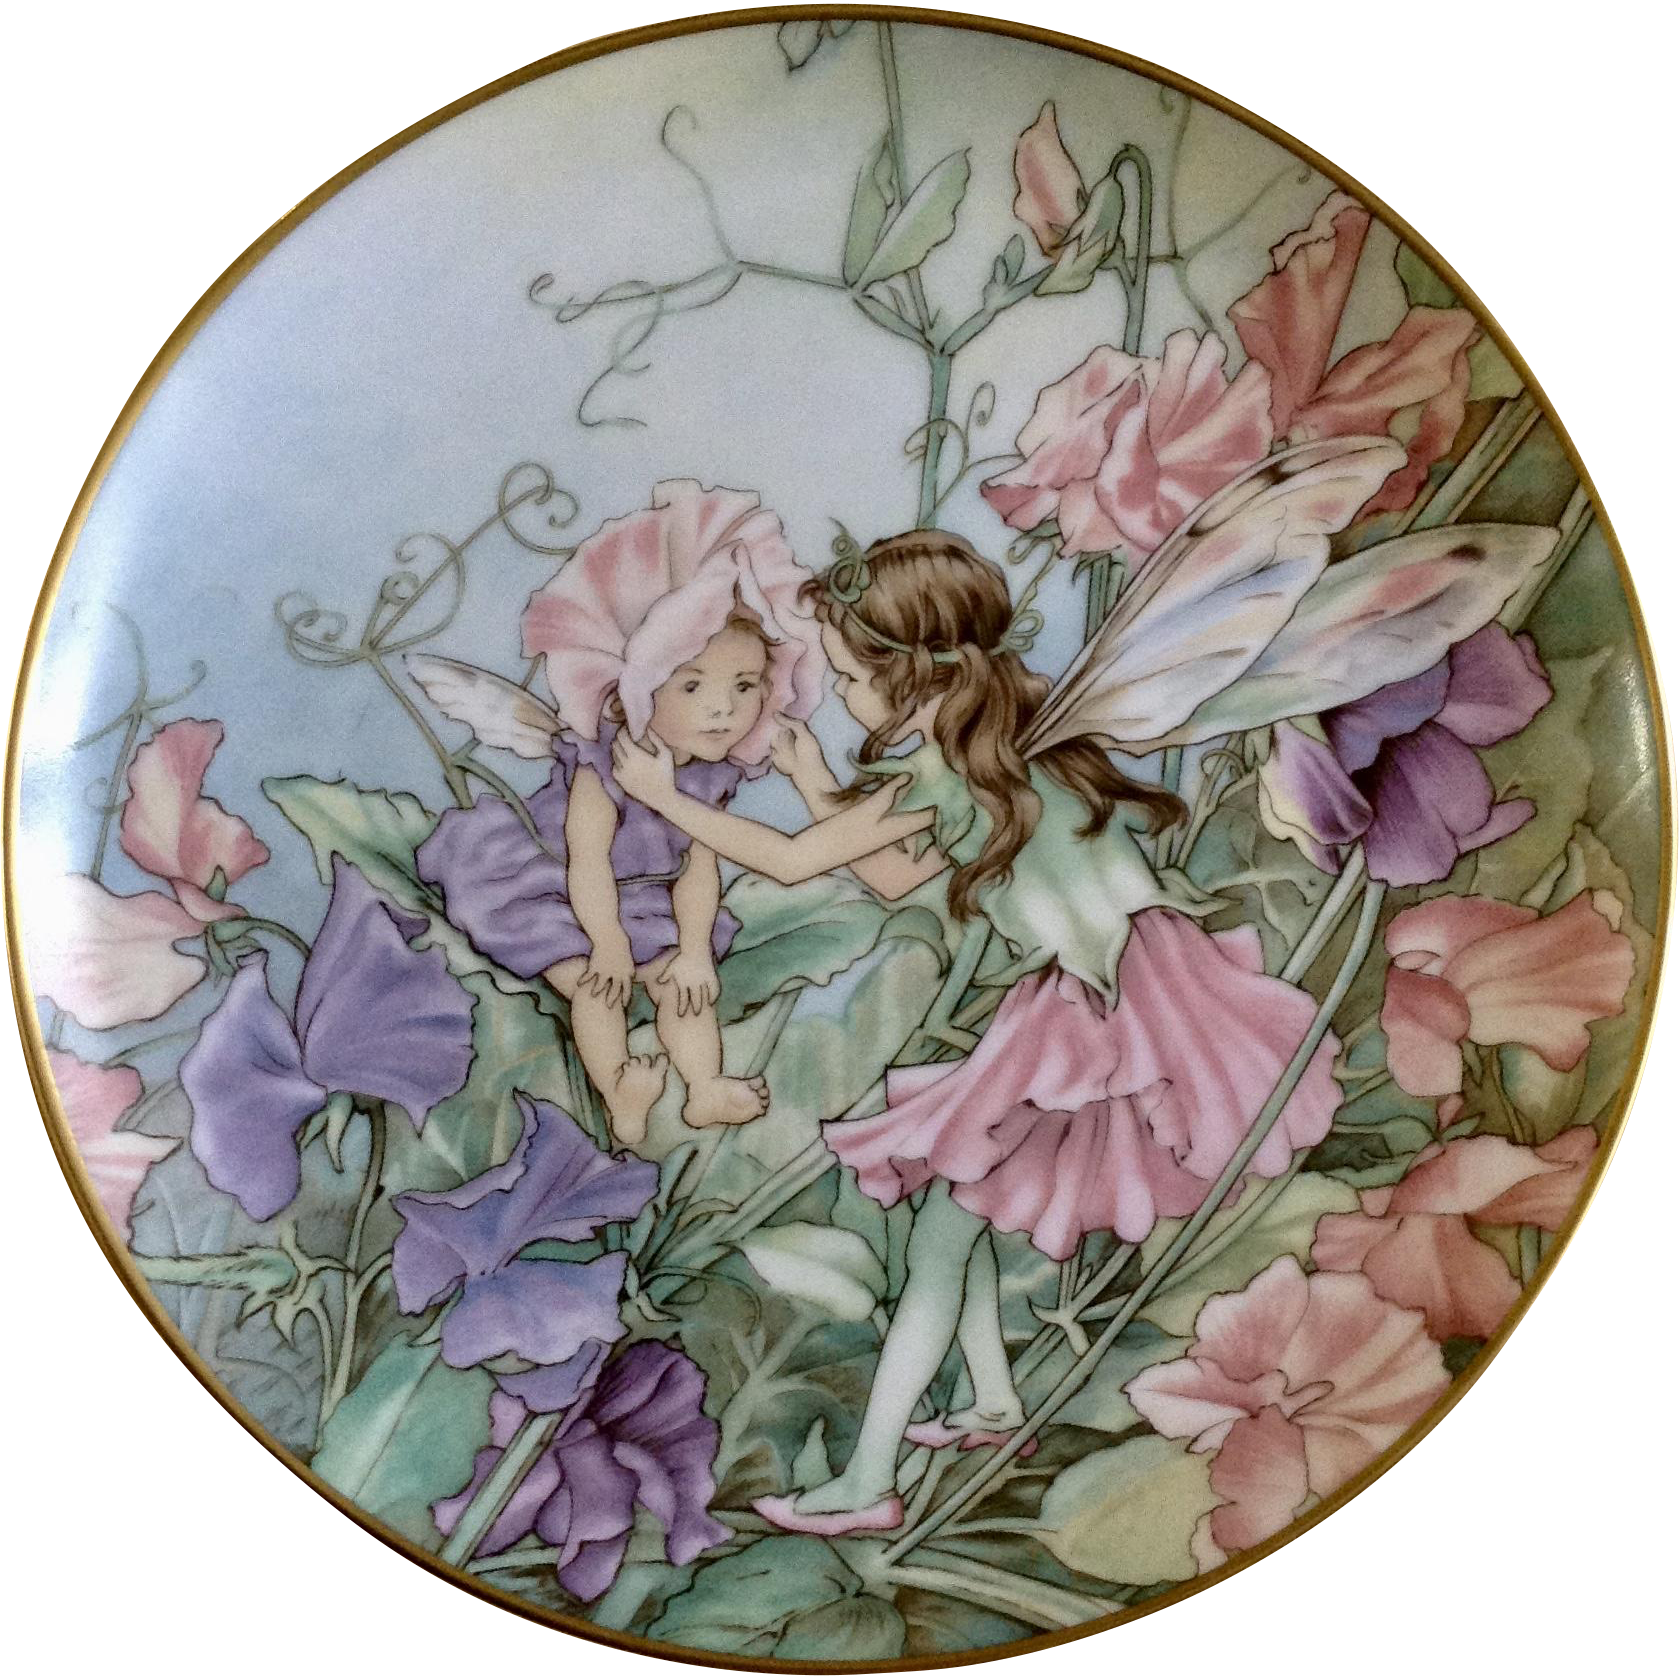 1980 The Sweet Pea Fairy Collectors Plate Flower Fairies By Heinrich H C Villeroy Boch Germany Discontinued Flower Fairies Flower Plates Sweet Pea